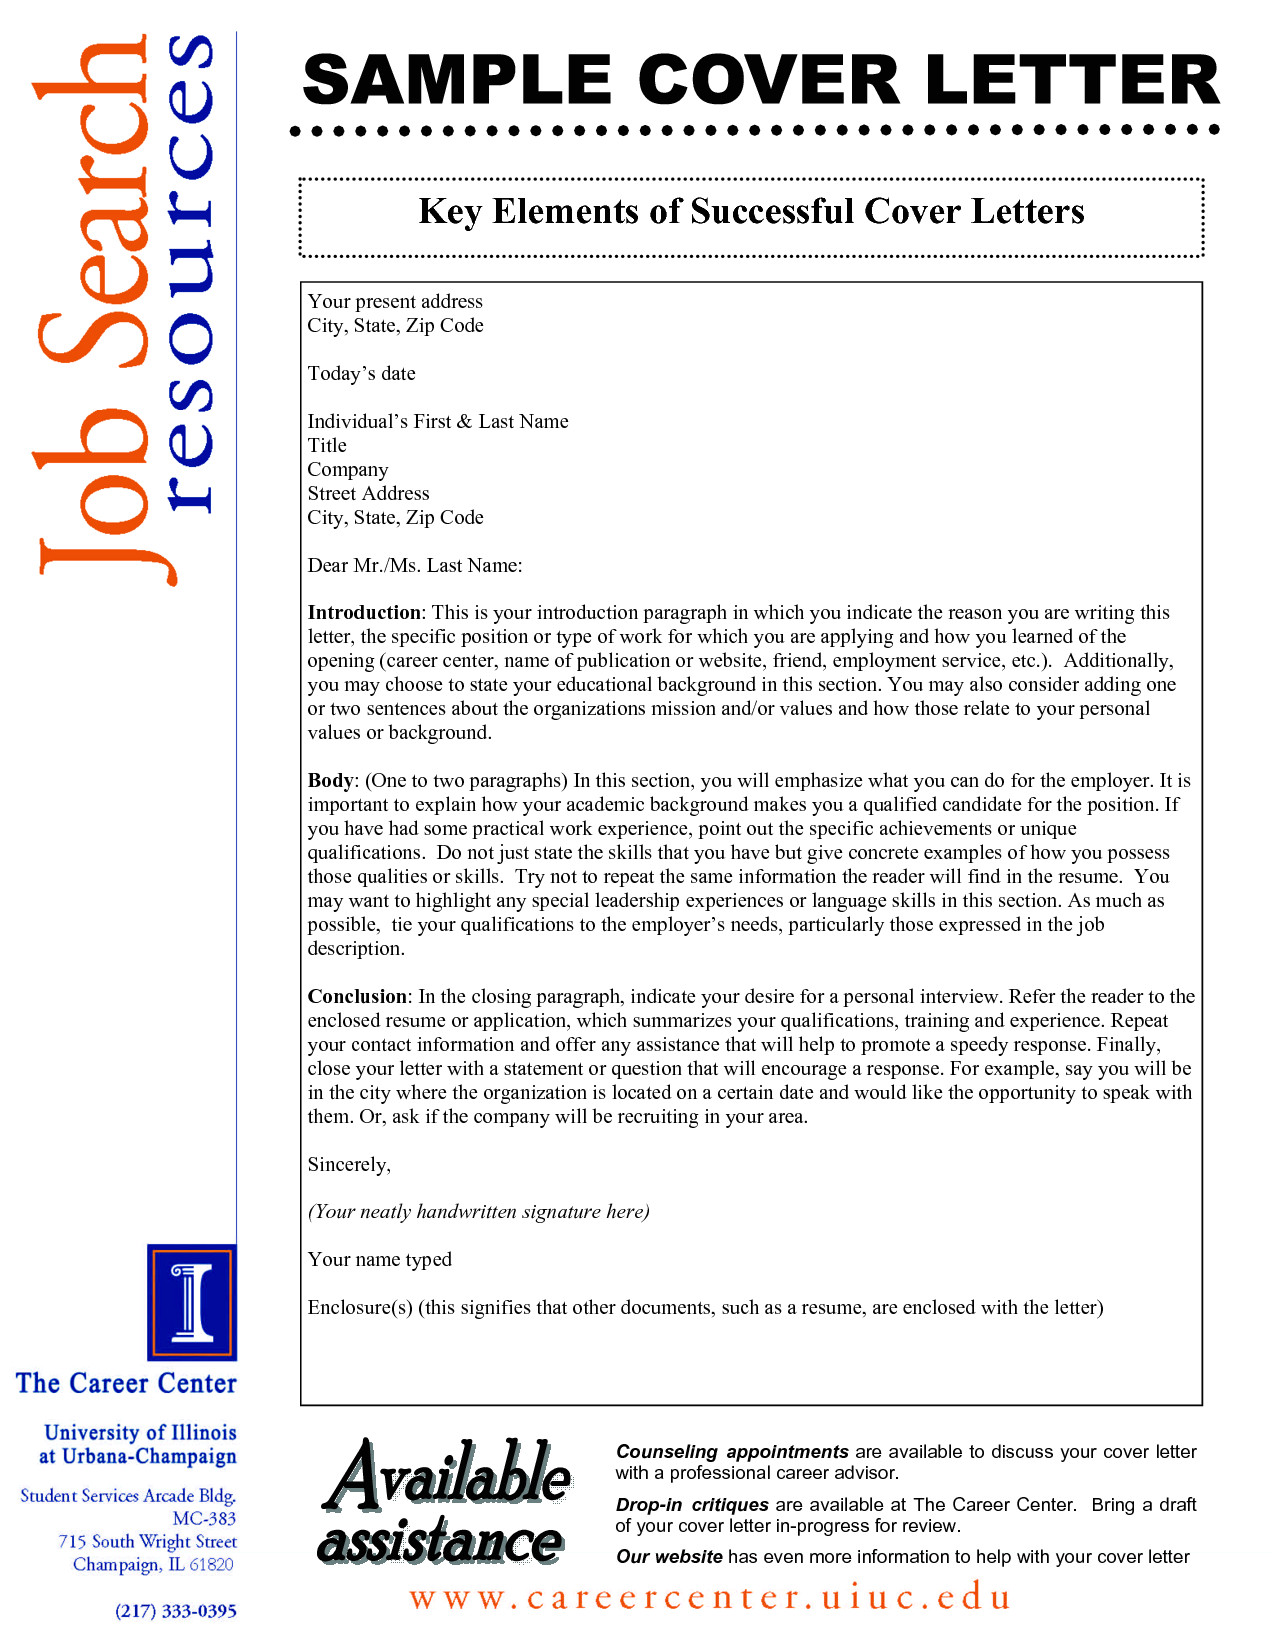 post successful cover letters 449618